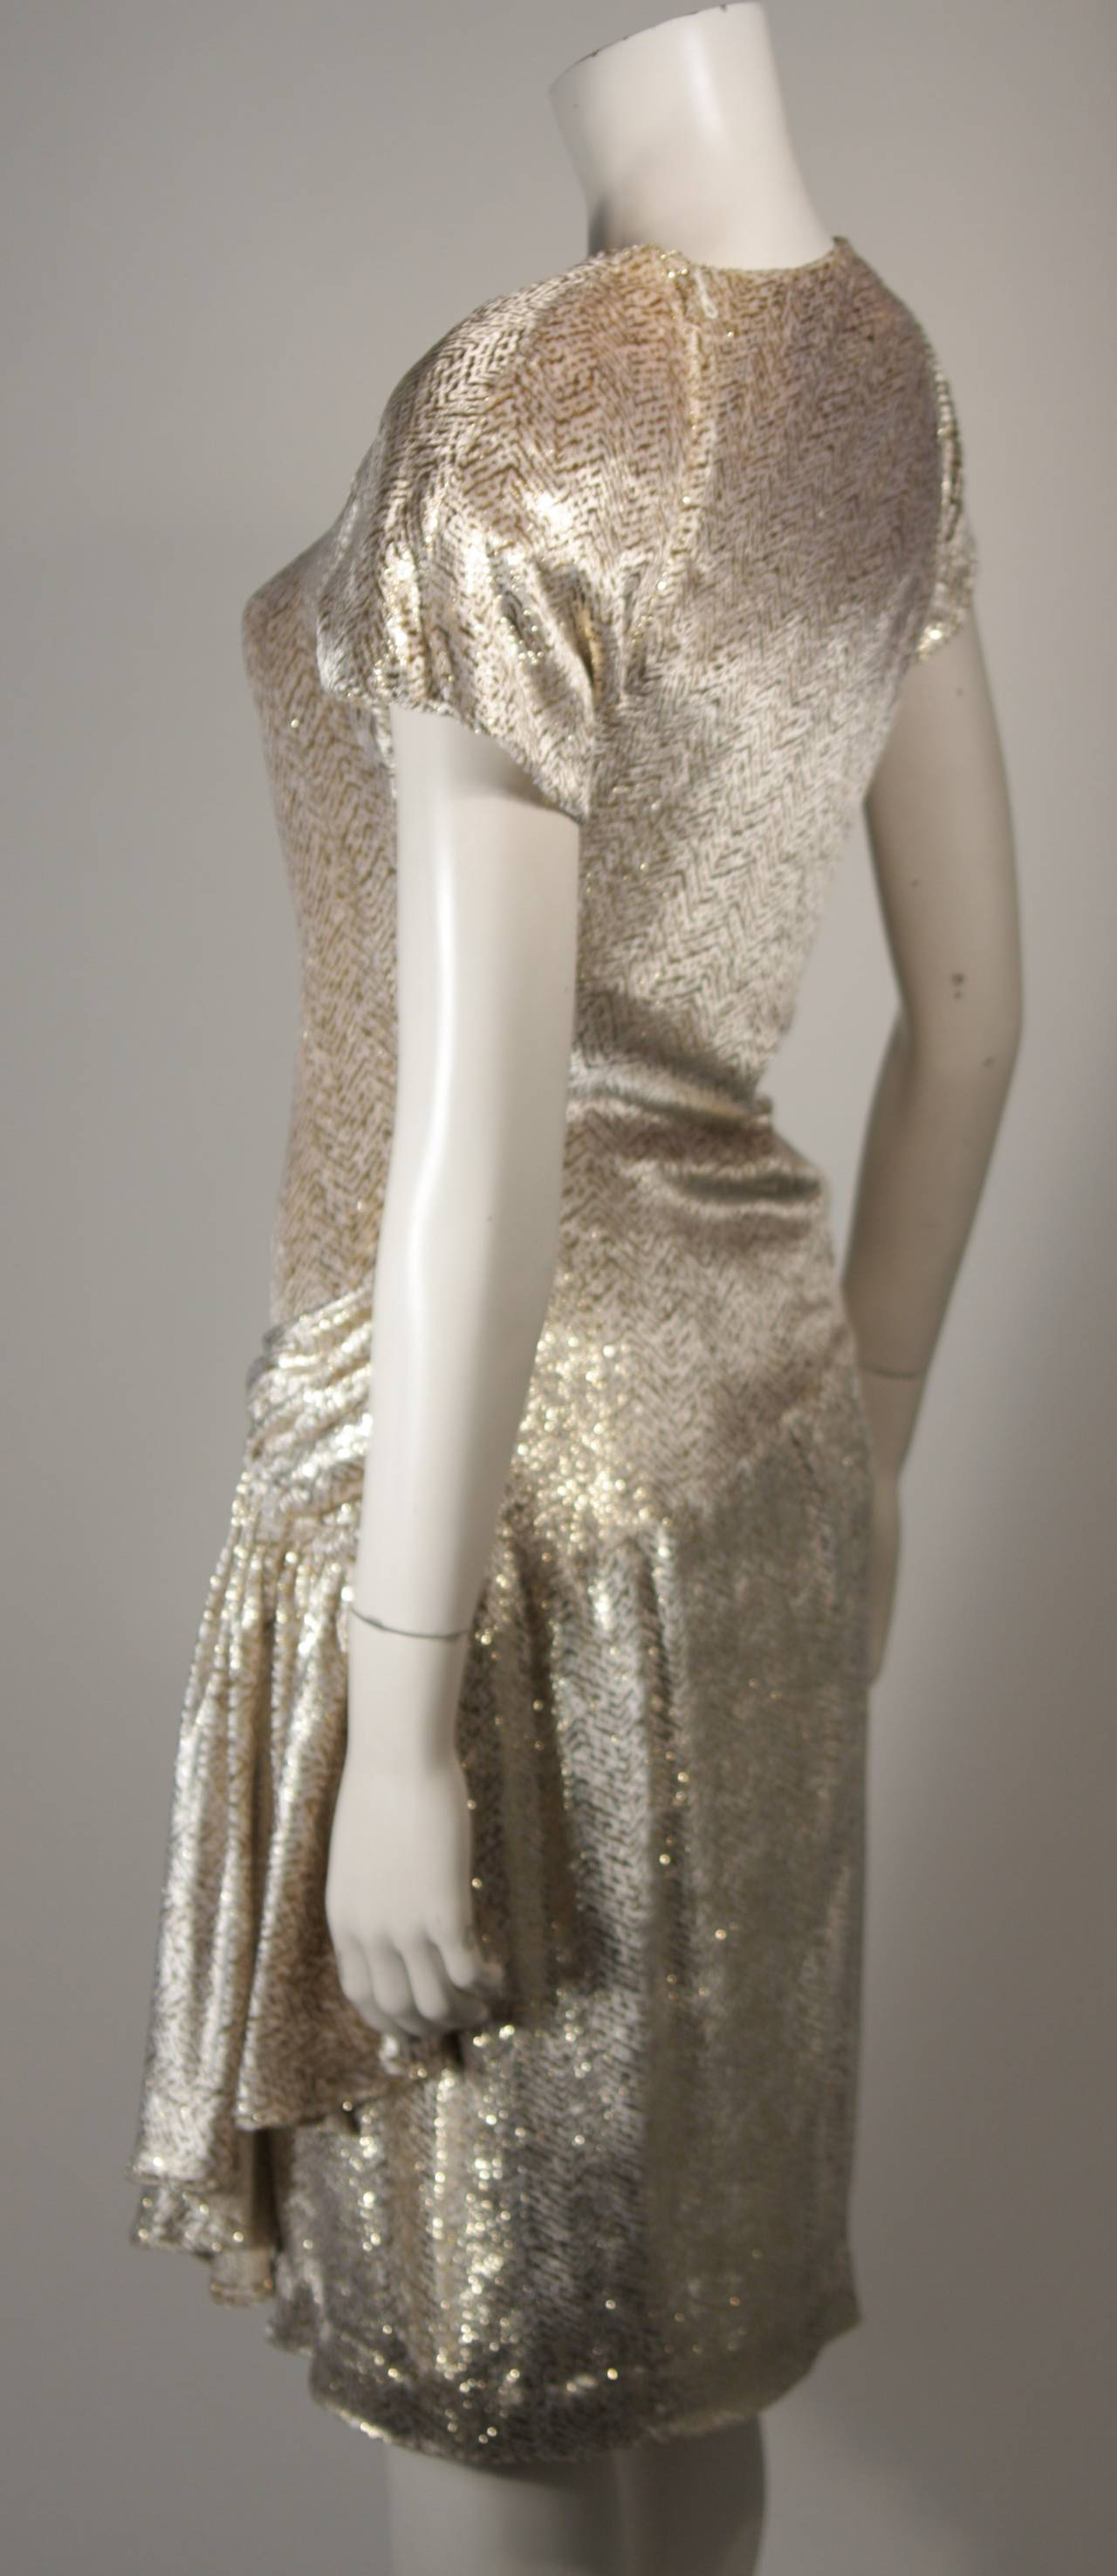 Vicky Tiel Ivory and Gold Velvet Texture Cocktail Dress Size 38 For Sale 2